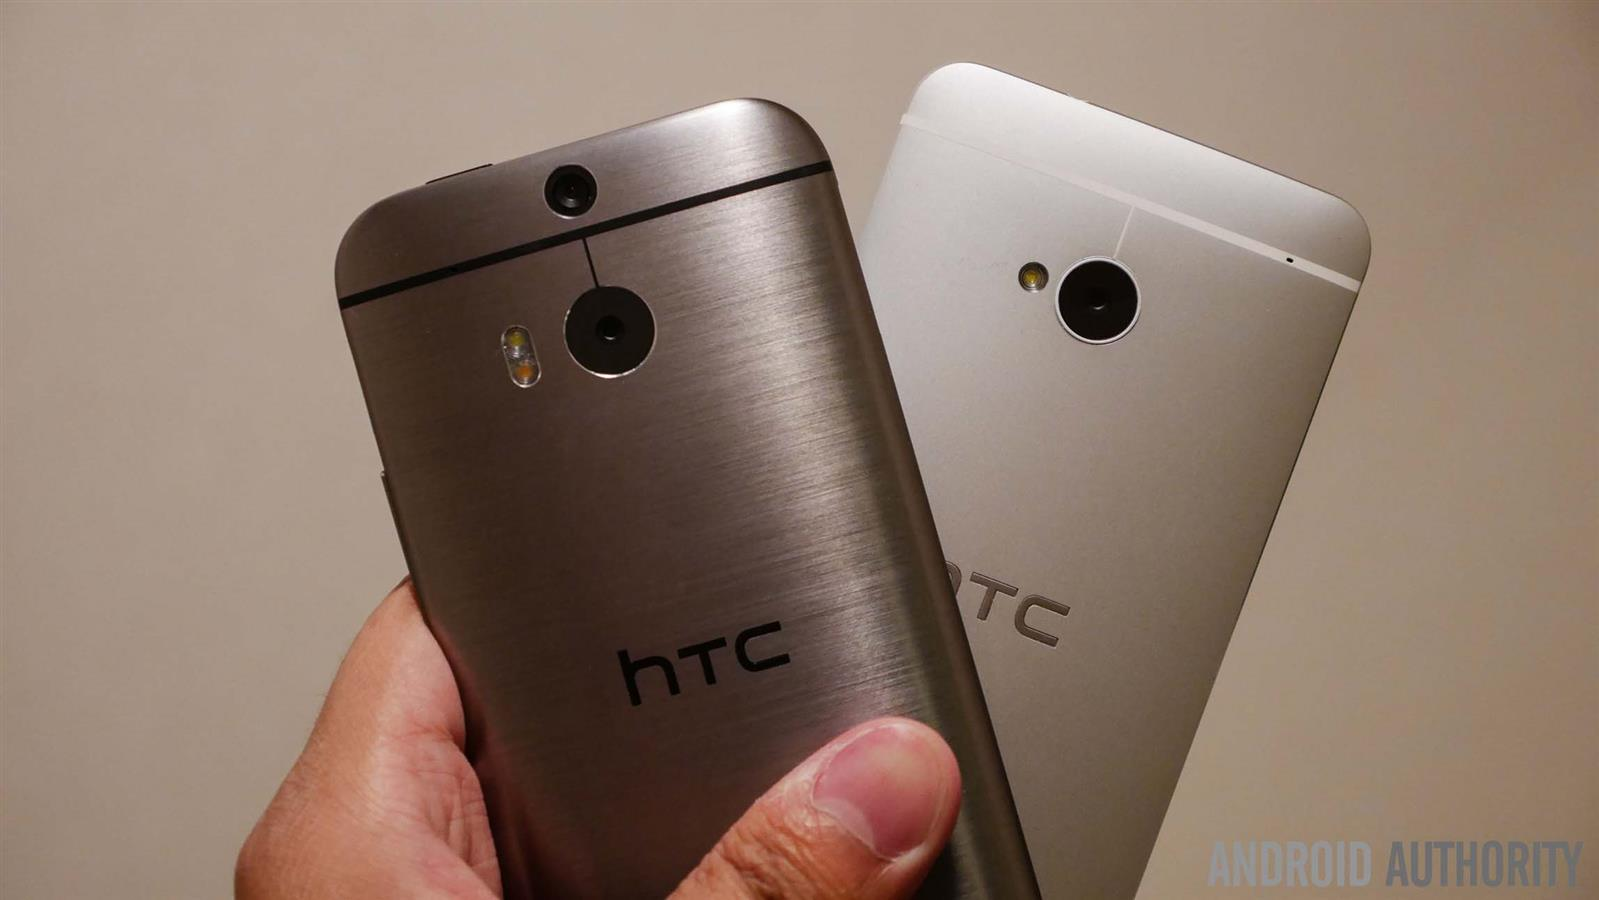 htc-one-m8-vs-htc-one-m7-quick-look-aa-15-of-191